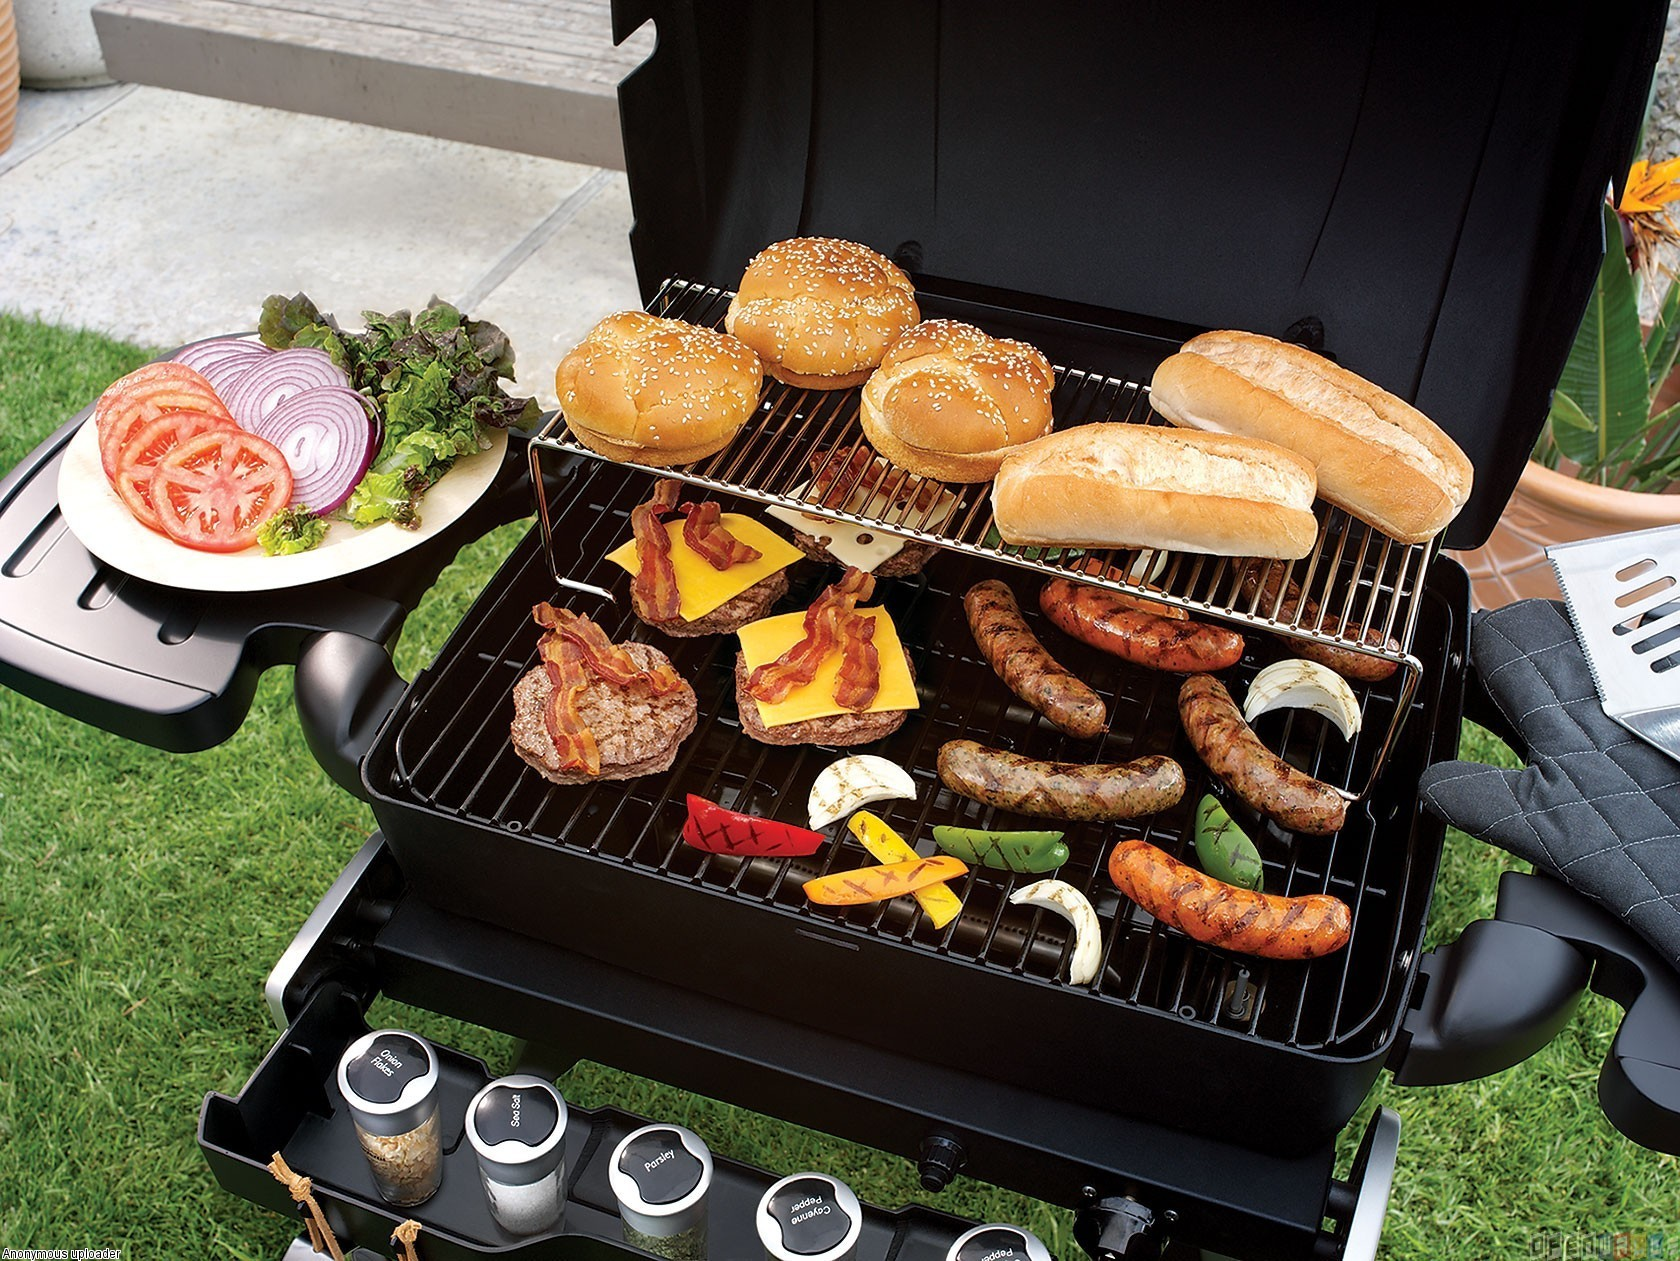 barbecue_grill_1680x1261.jpg